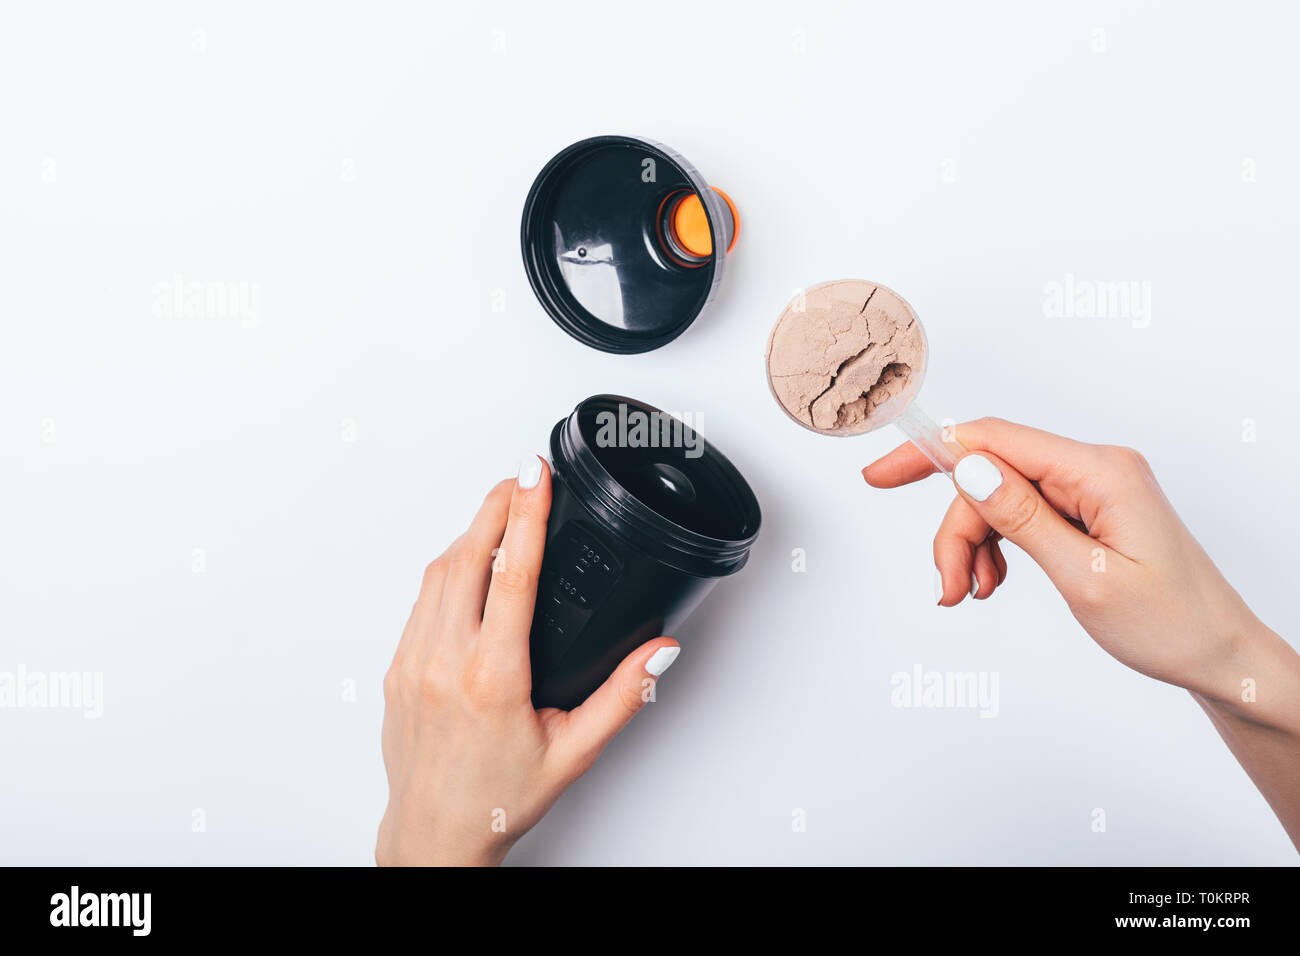 Woman's hands putting scoop of chocolate protein powder into black plastic shaker to prepare sports drink for muscle growth, top view on white table. Stock Photo